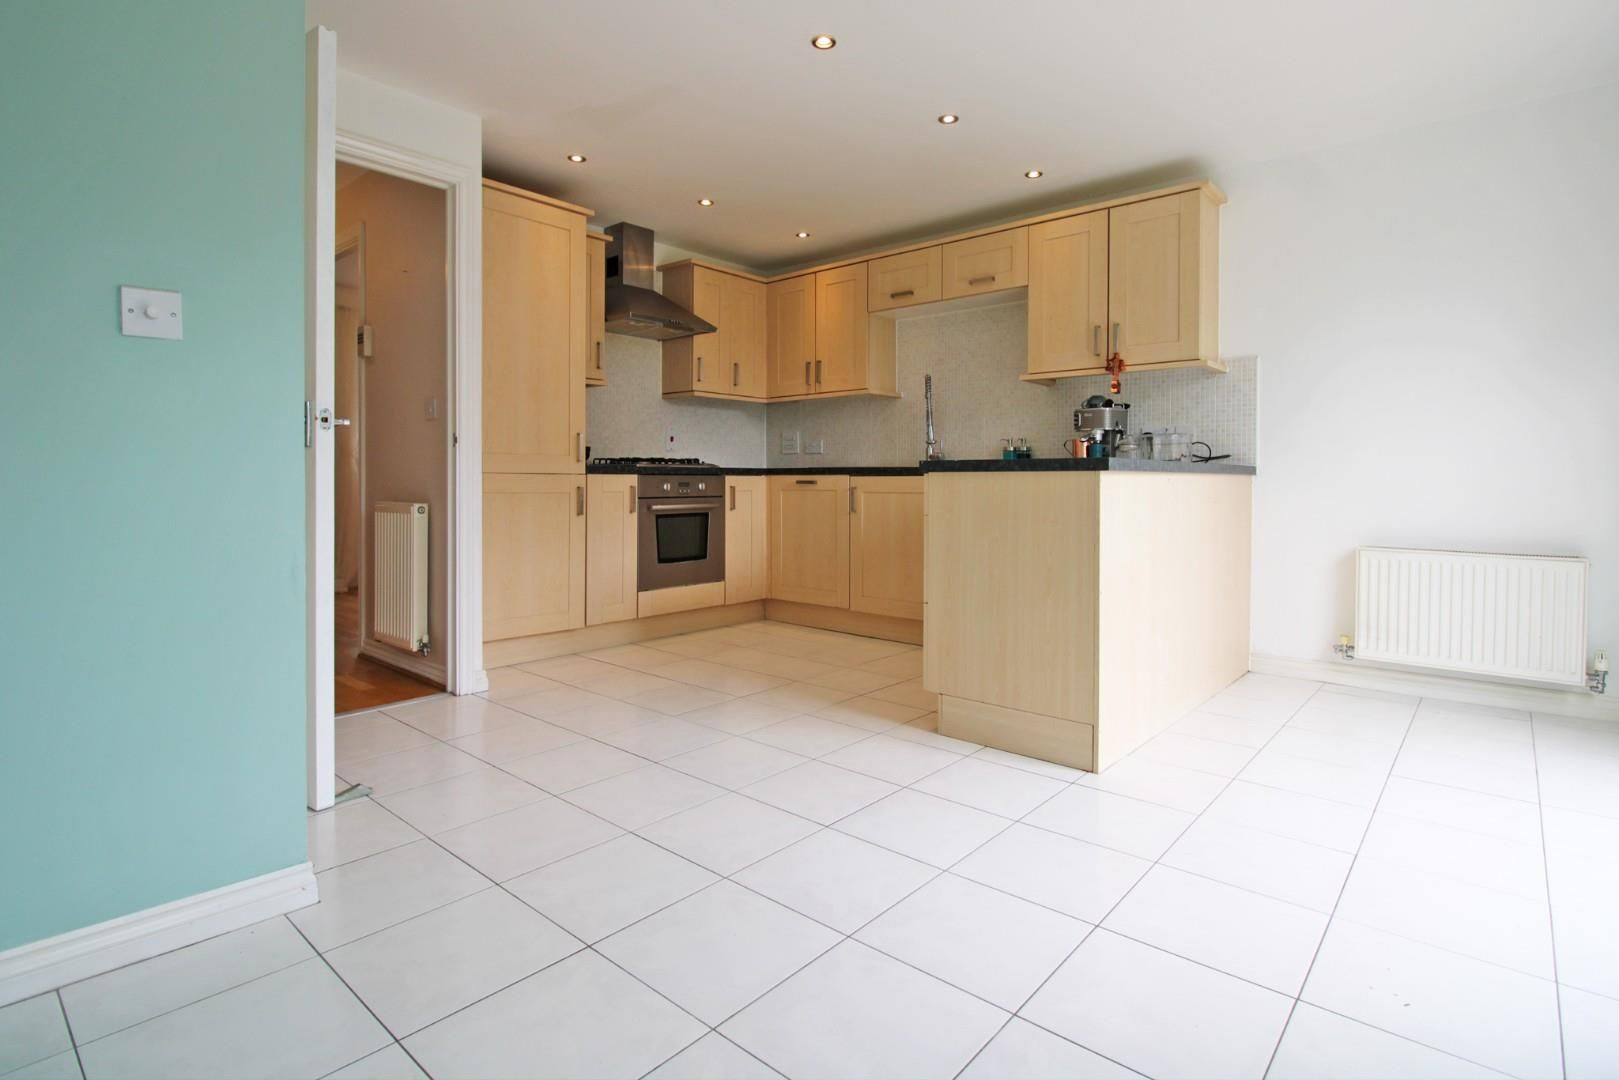 3 bed end of terrace to rent in Shinfield 3